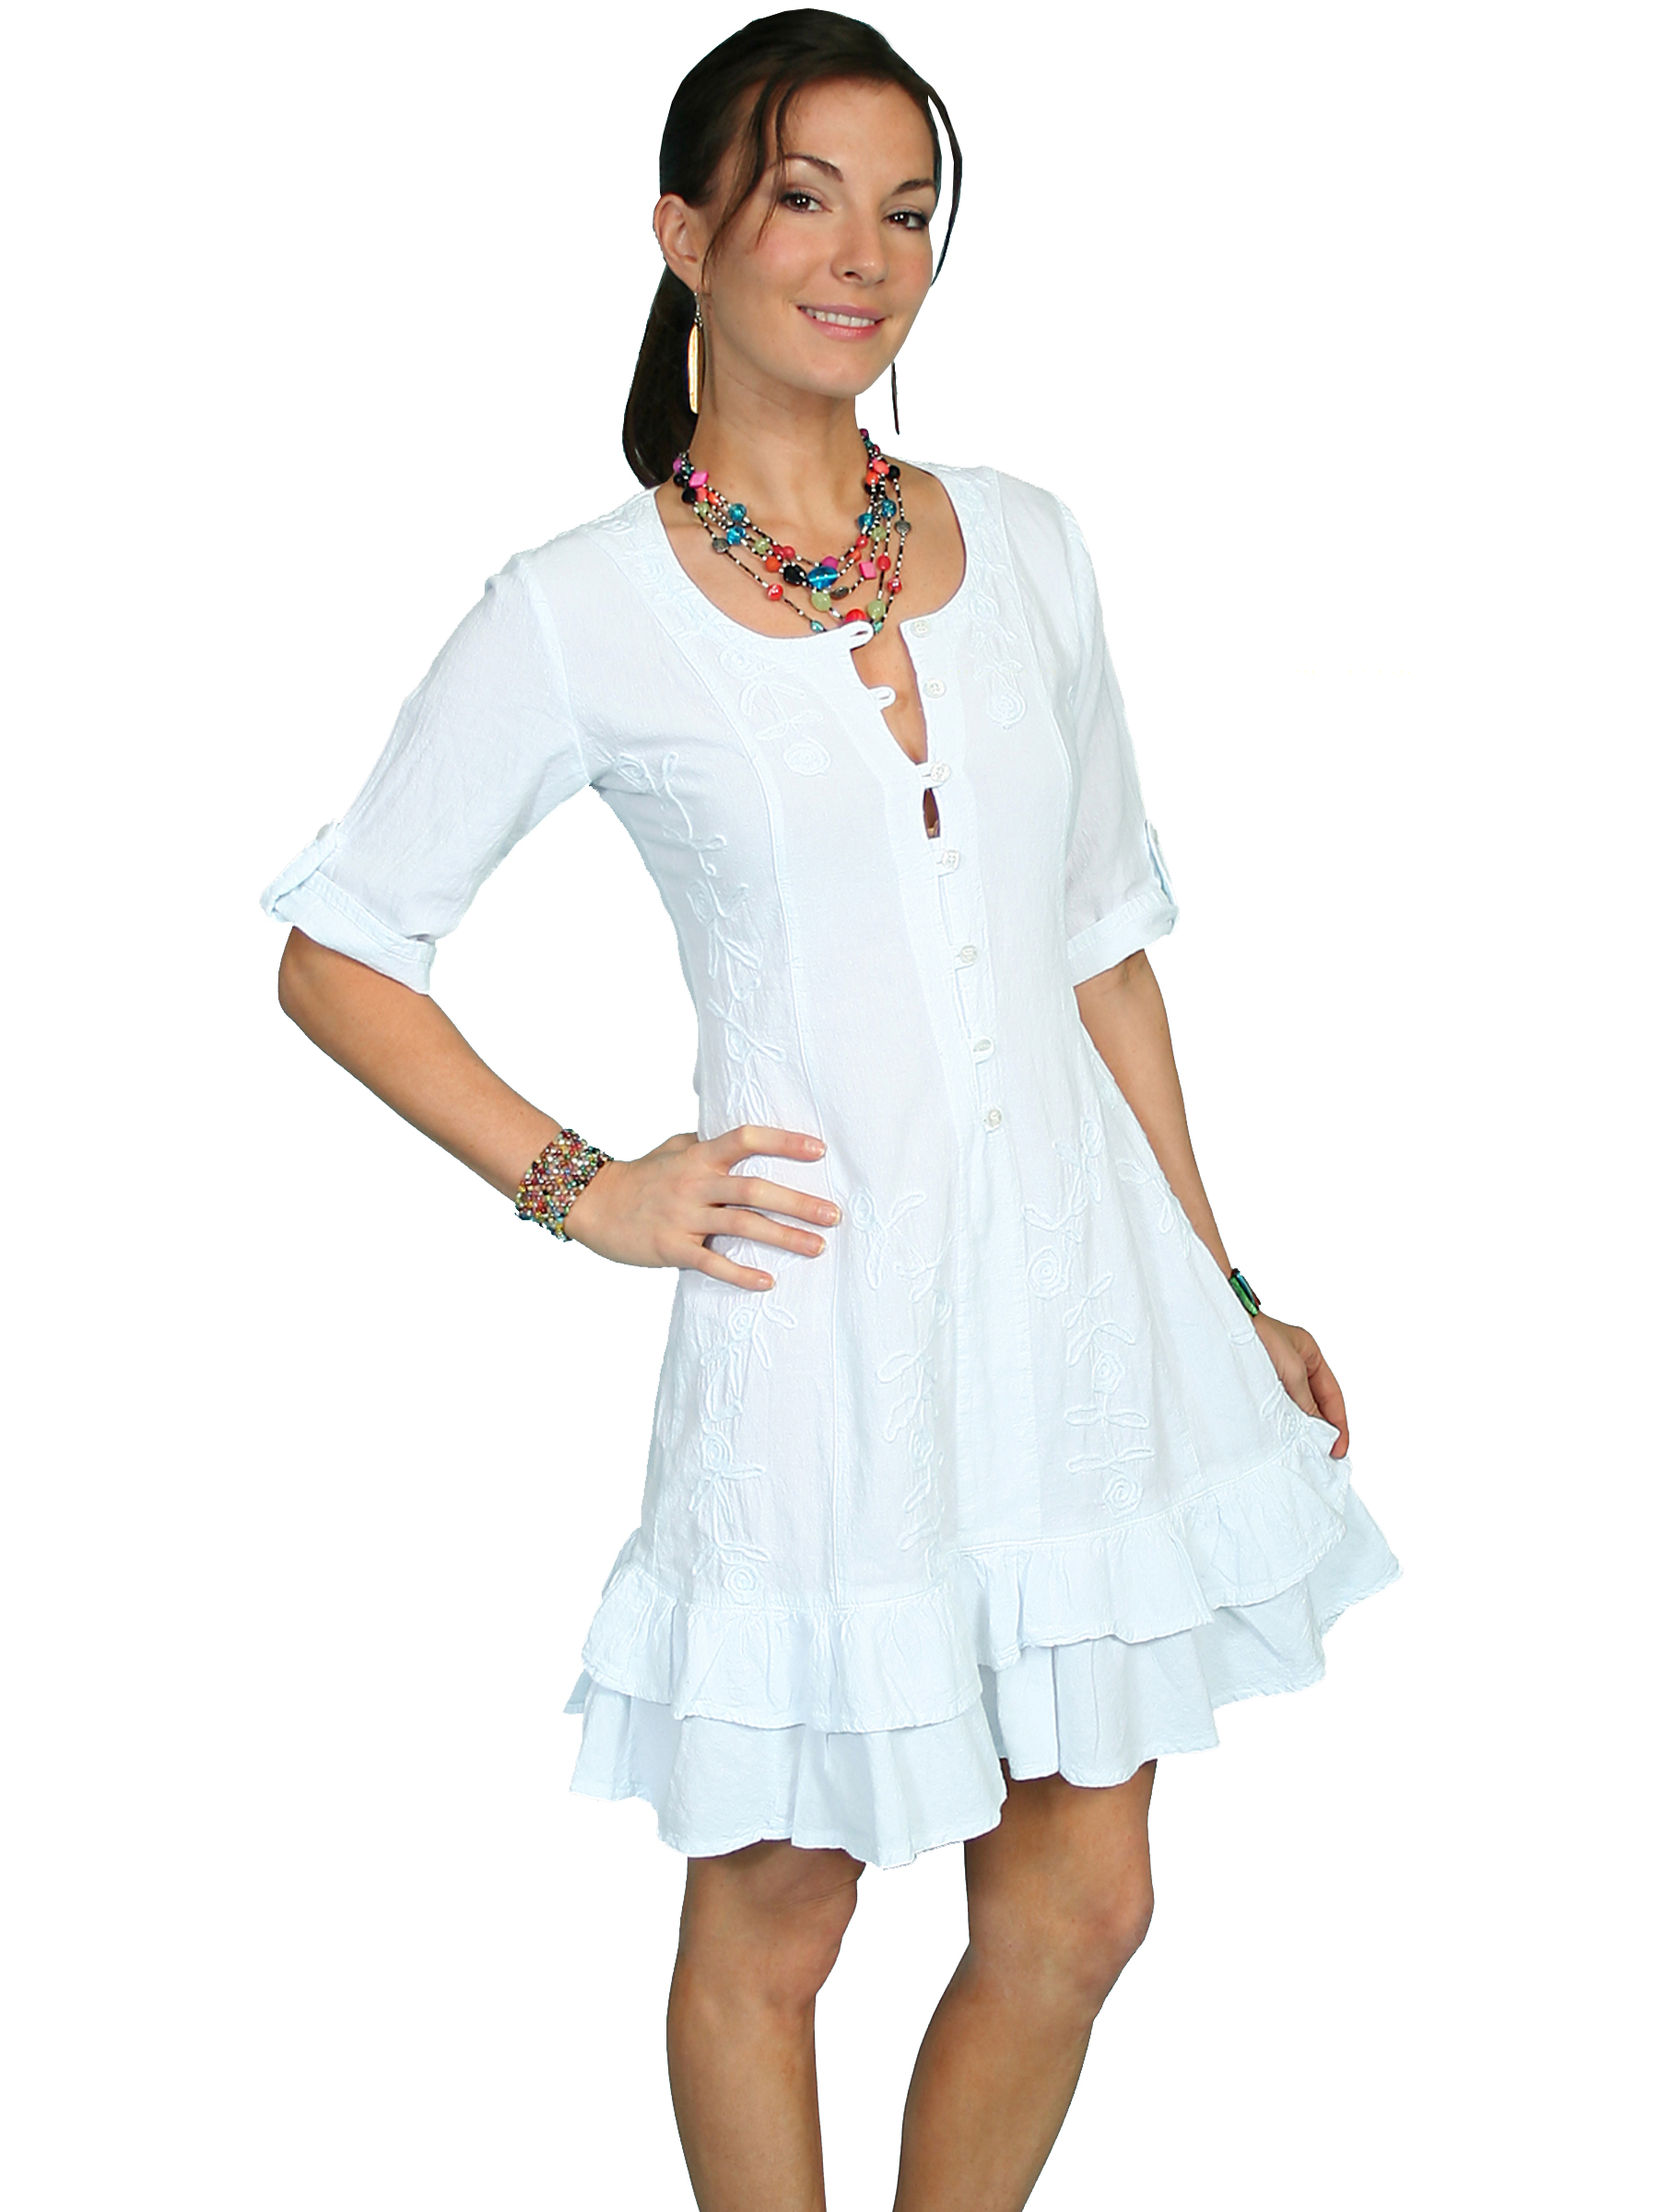 100% peruvian cotton 3/4 sleeve dress